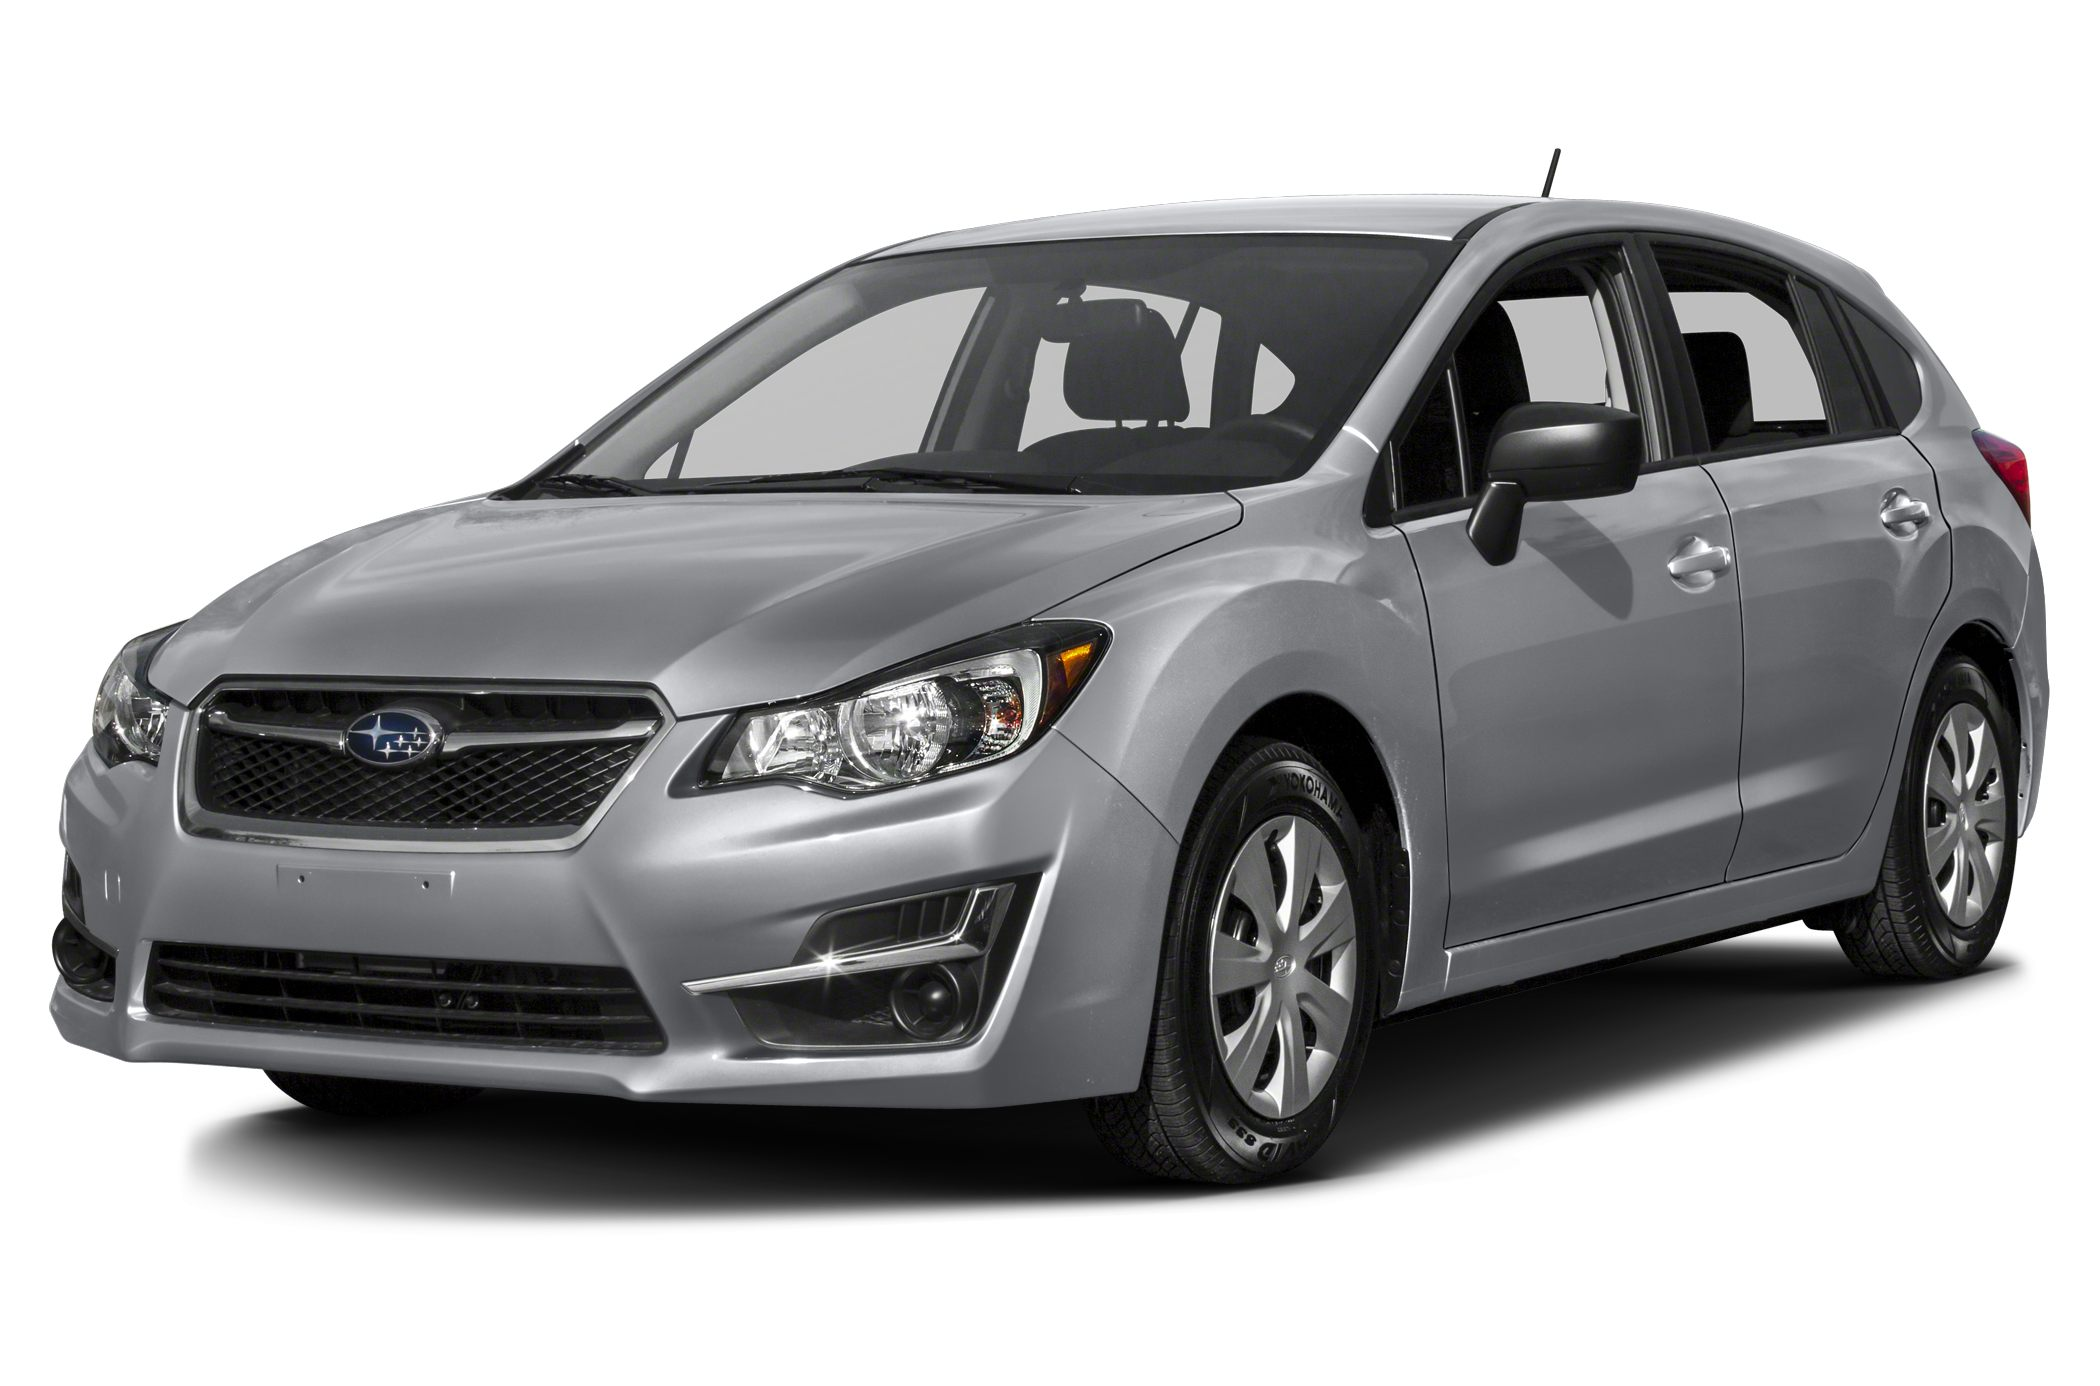 2015 Subaru Impreza 2.0i Sedan for sale in Claremont for $20,425 with 1 miles